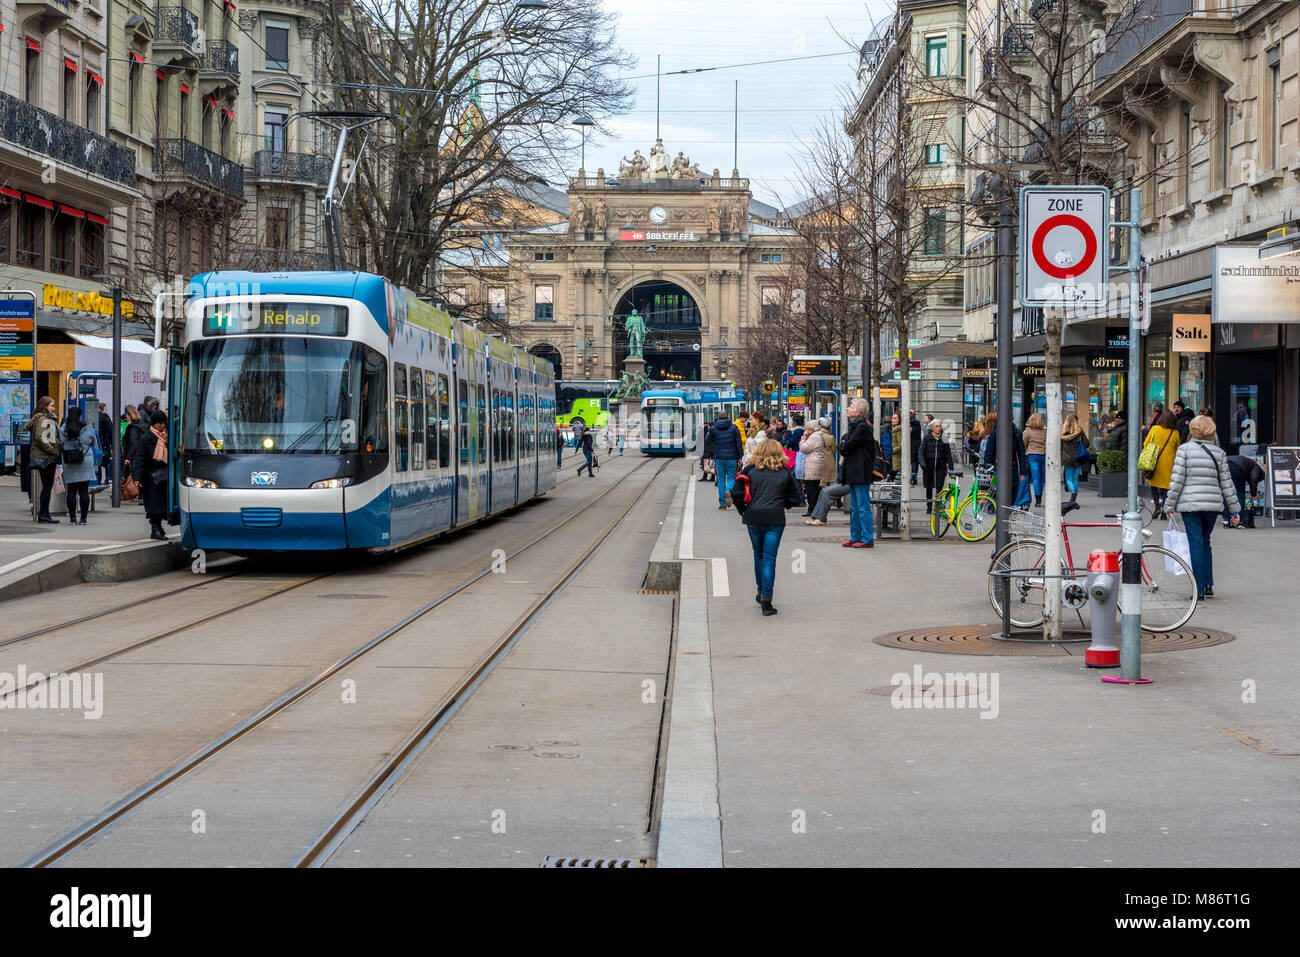 Bahnhofstrasse, Zurich, Switzerland with tram and shoppers - Stock Image